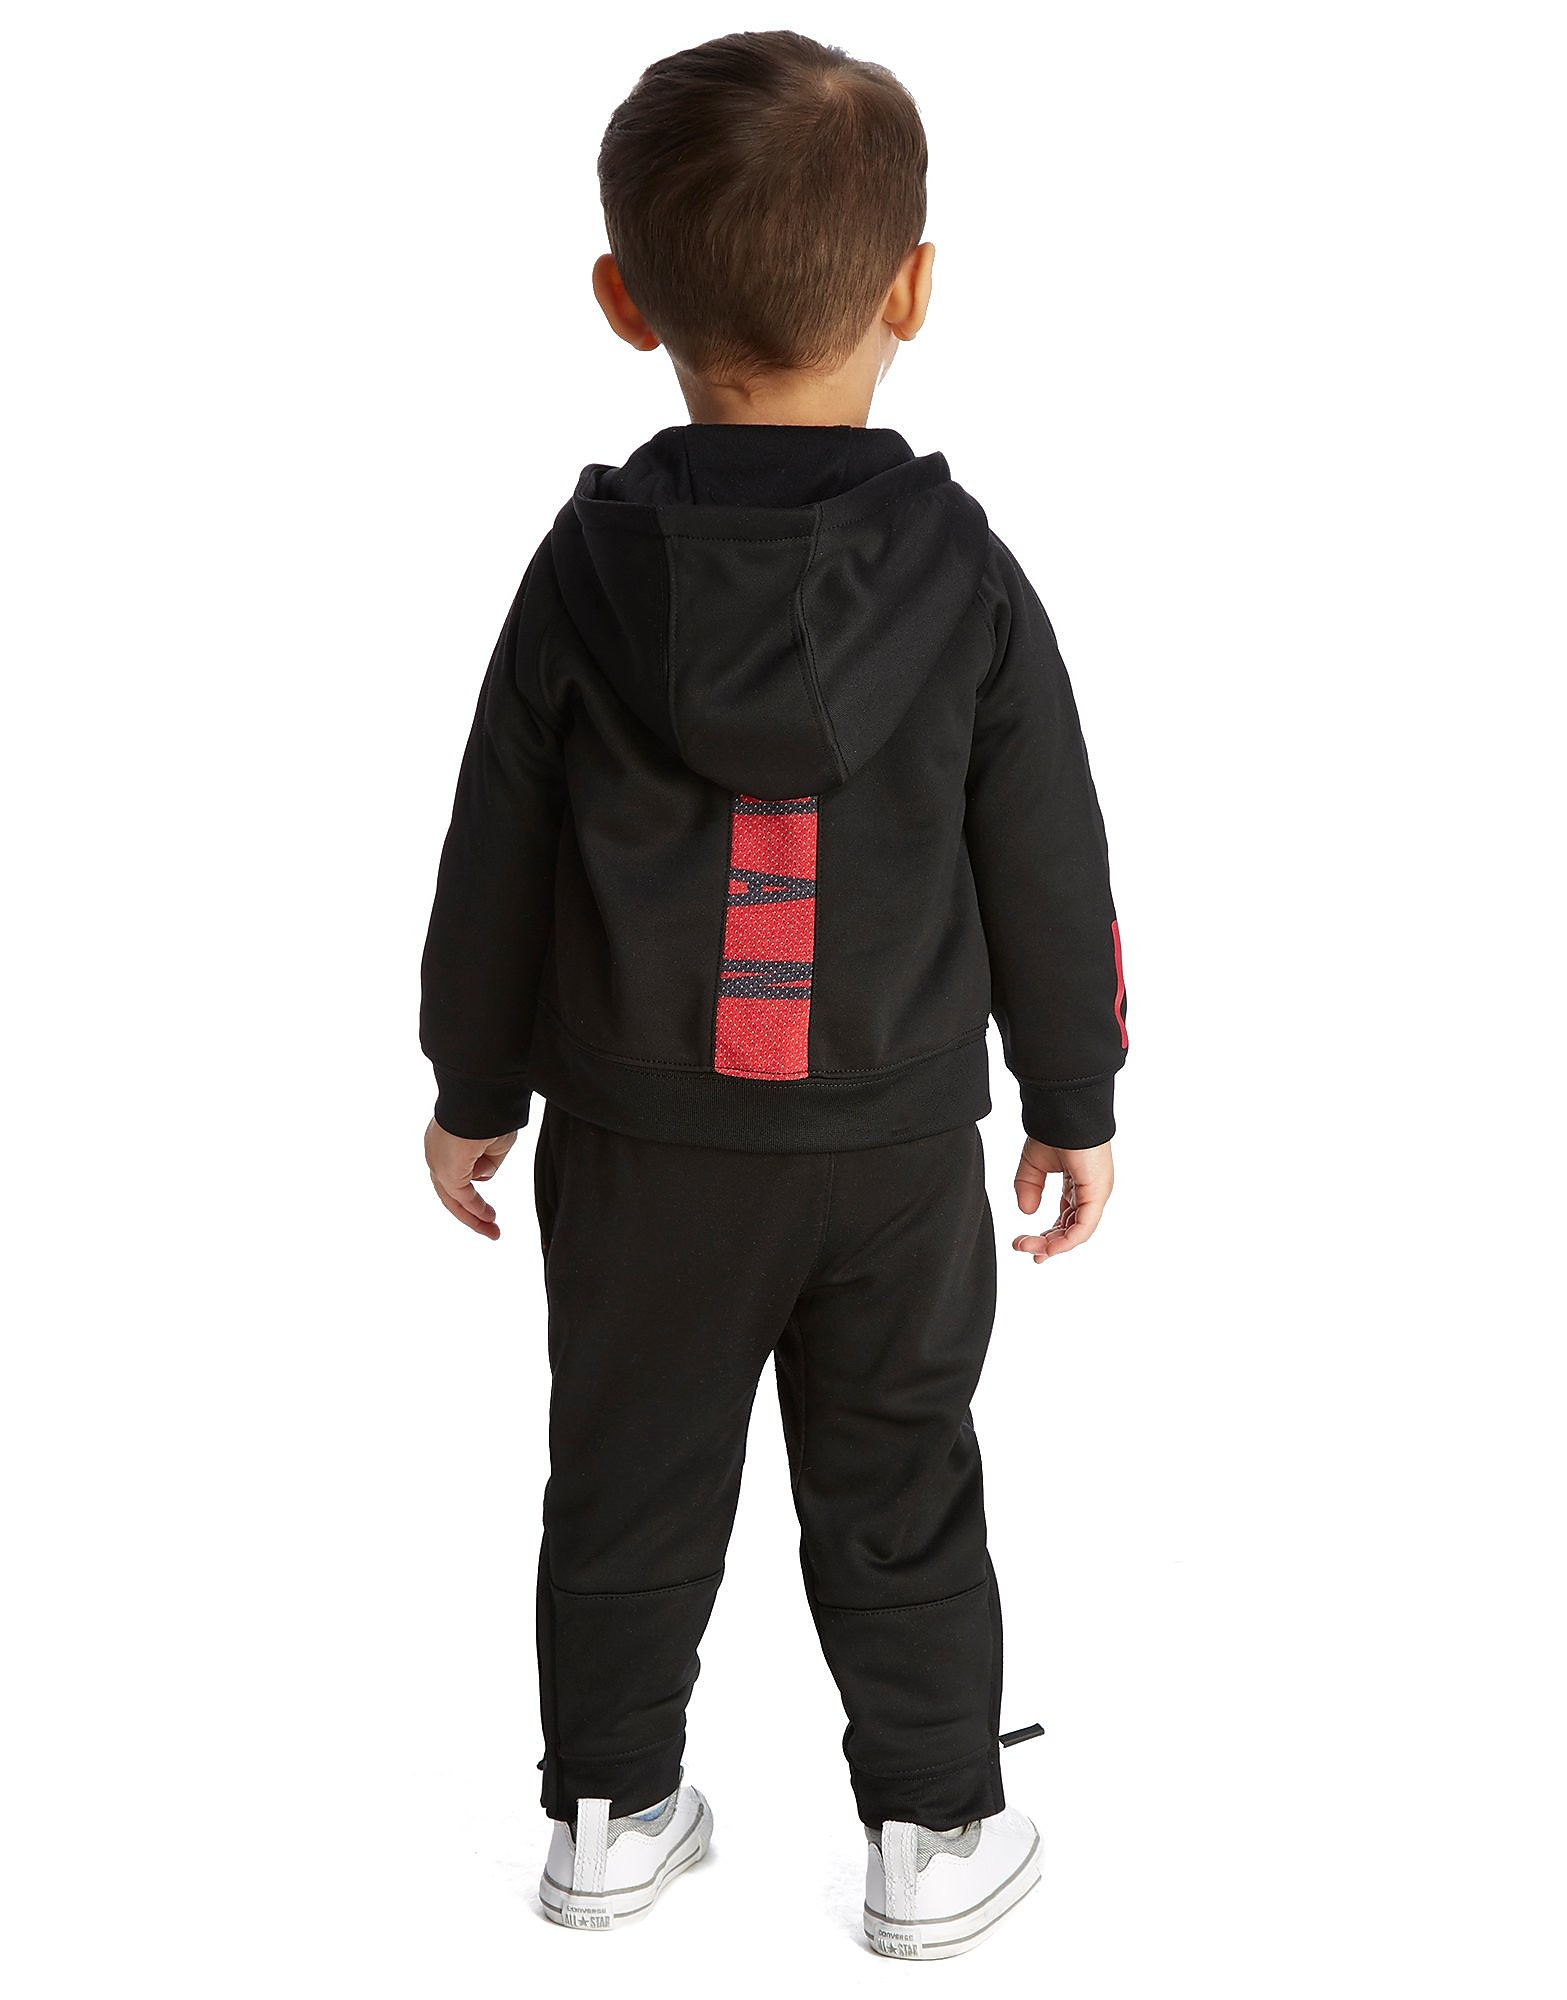 Jordan 23 Alpha Zip Suit Infant